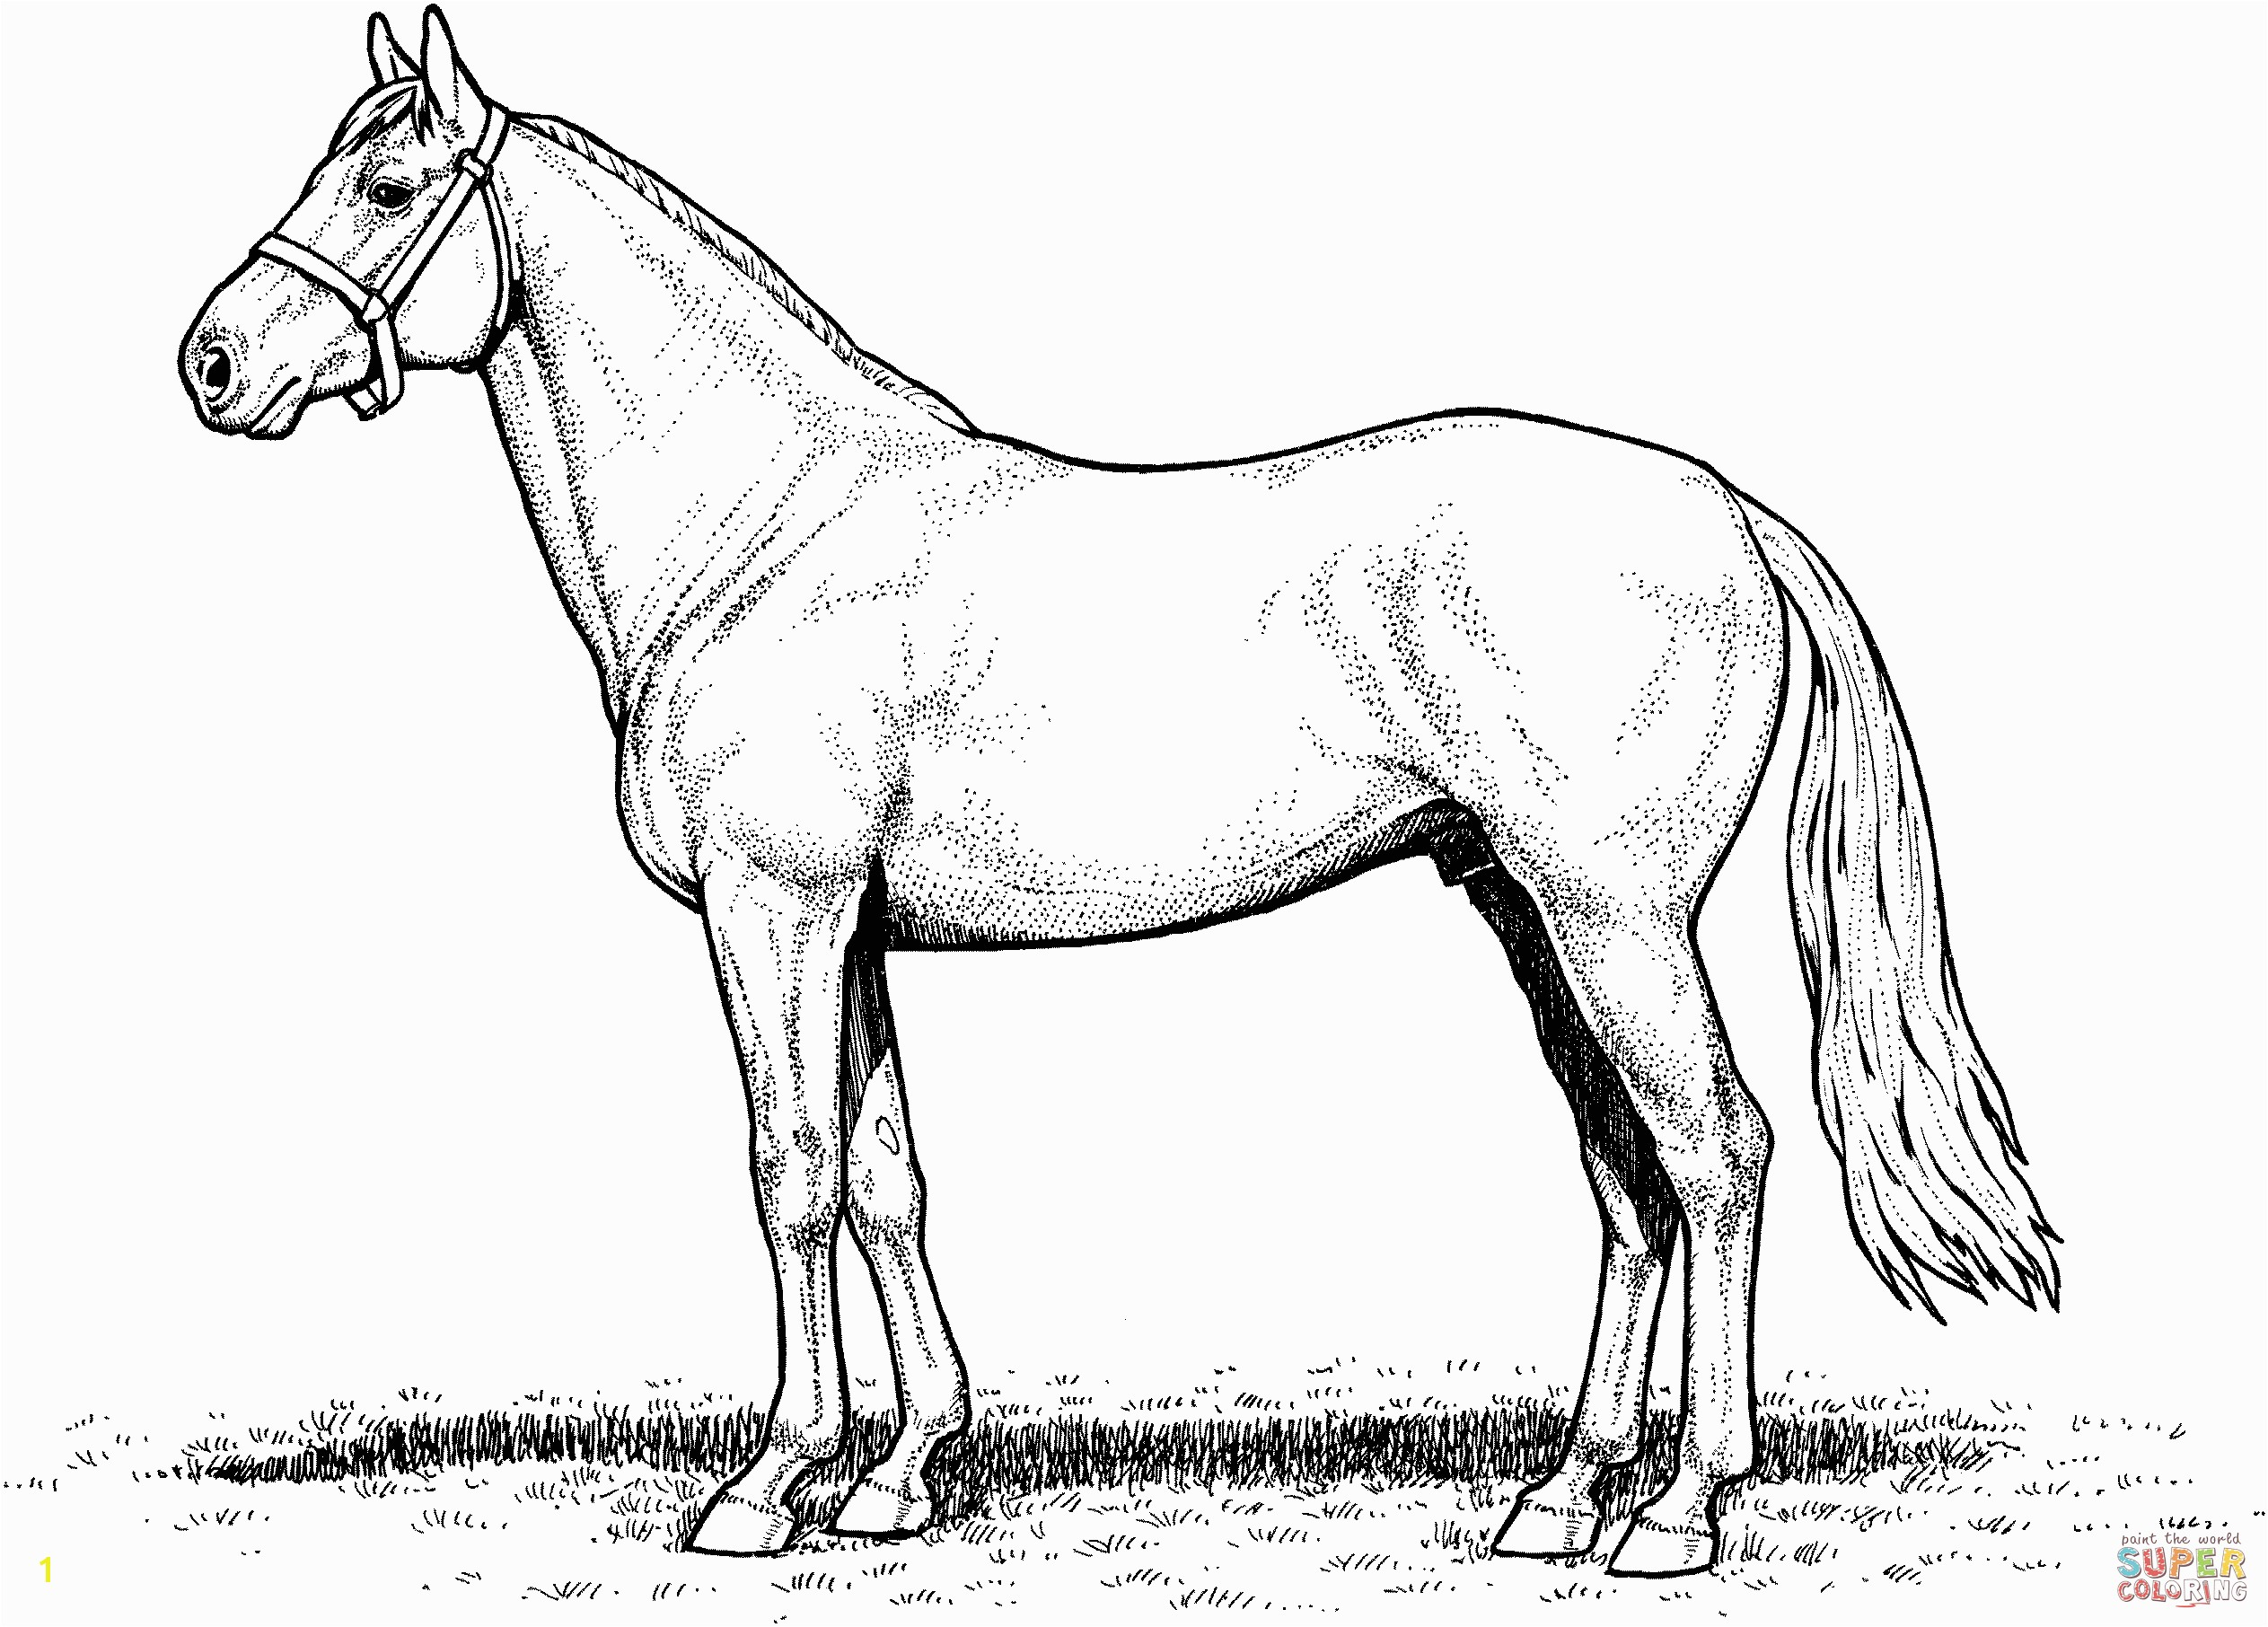 e of them is Free printable horse coloring pages for kids Description from intleadsolutions I searched for this on bing images